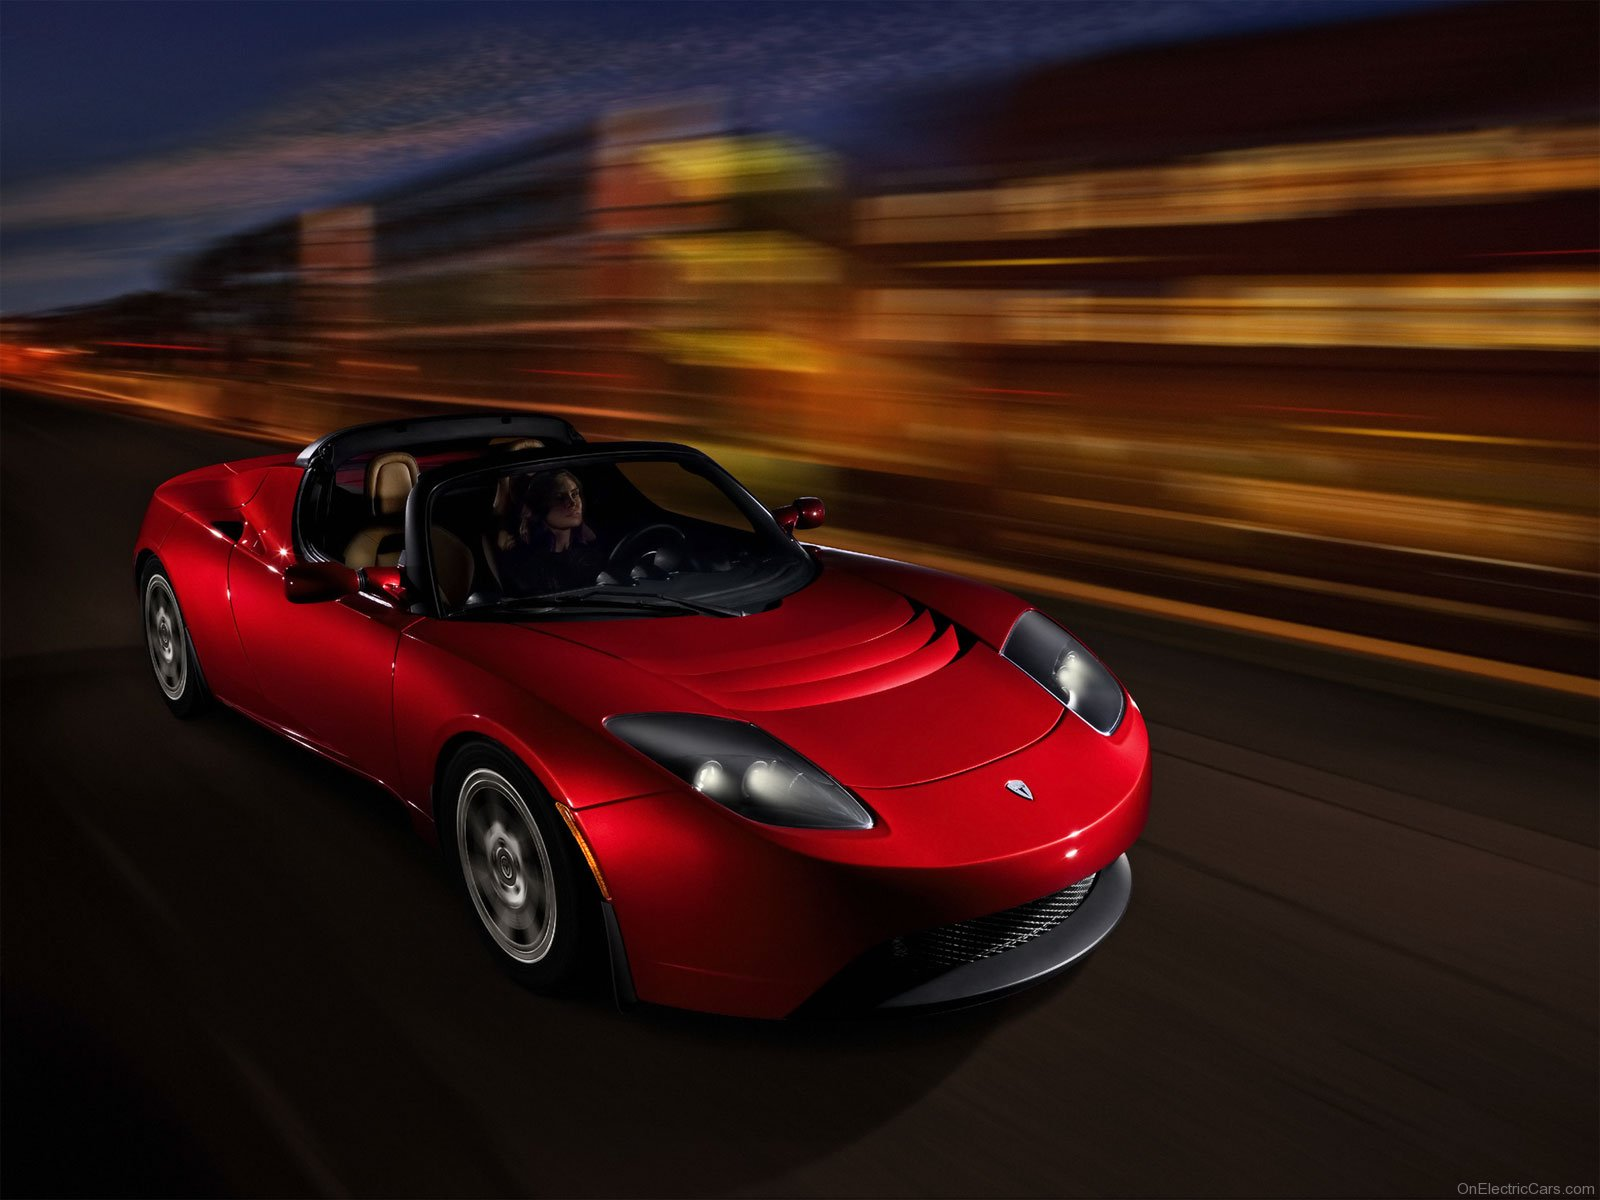 Wallpapers On Electric Cars 1600x1200